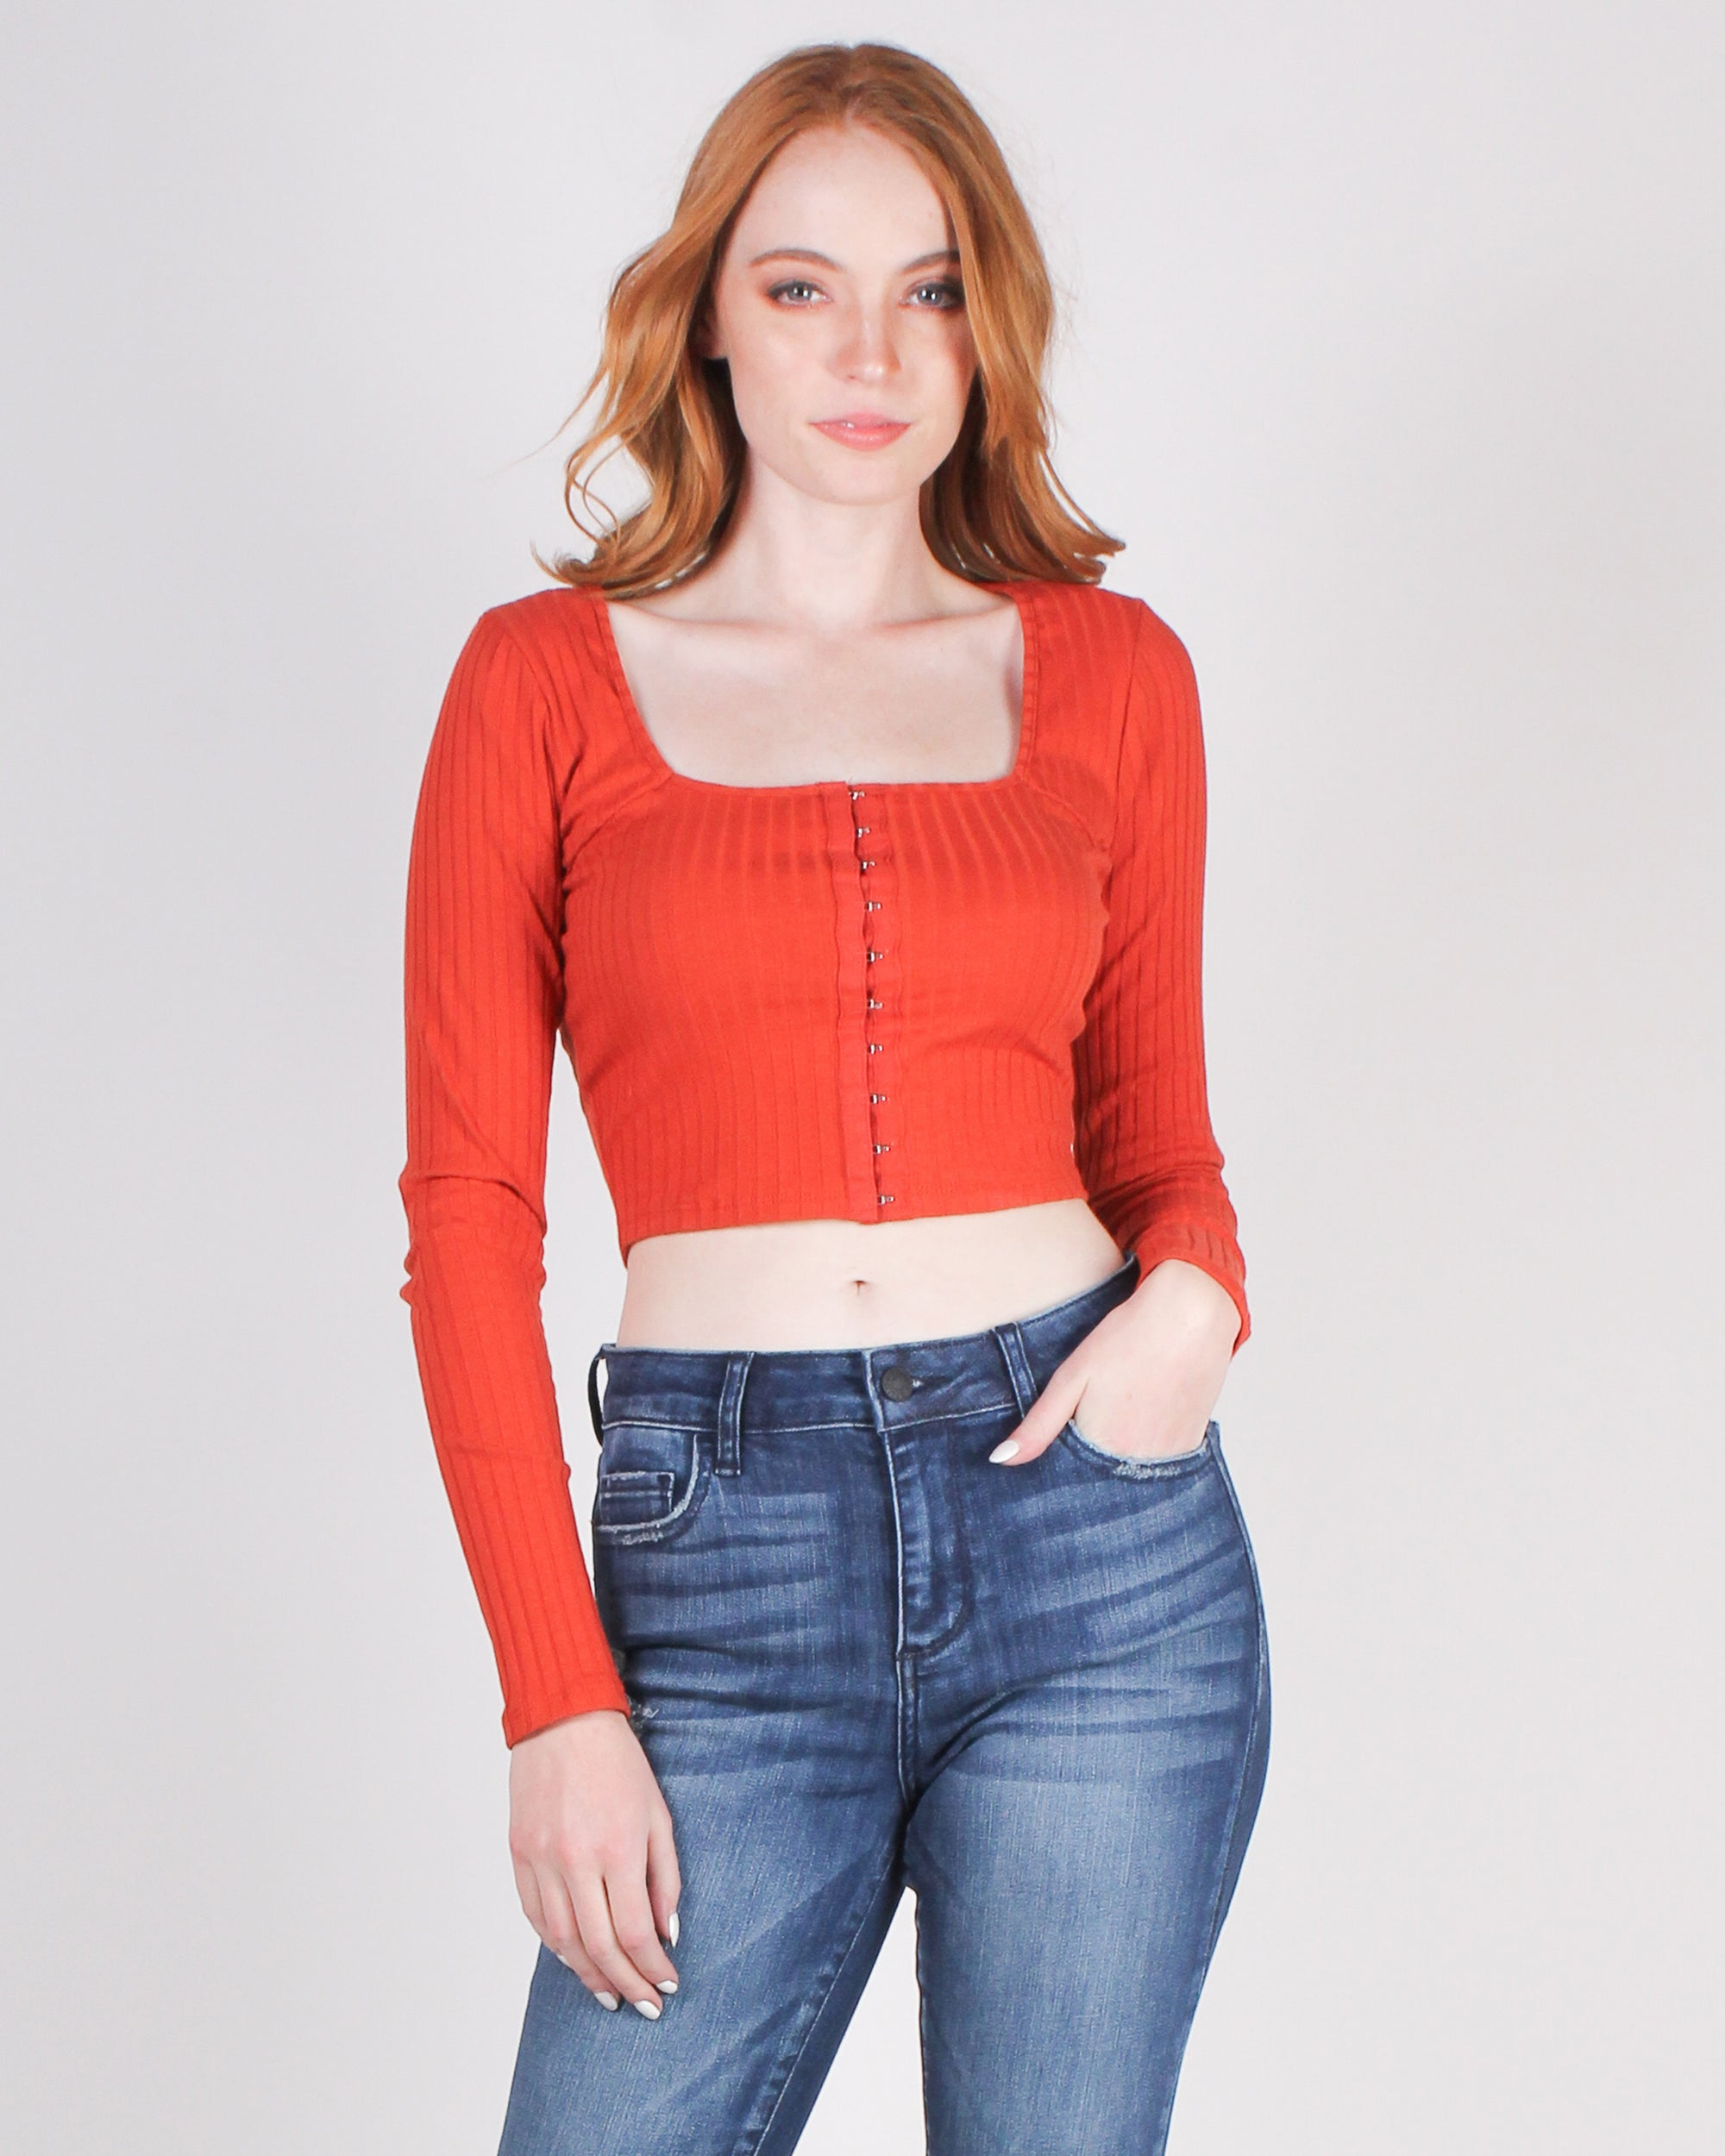 Fashion Q Shop Q Power to Create the Life I Desire Long Sleeve Top (Blood Orange) RT37012L